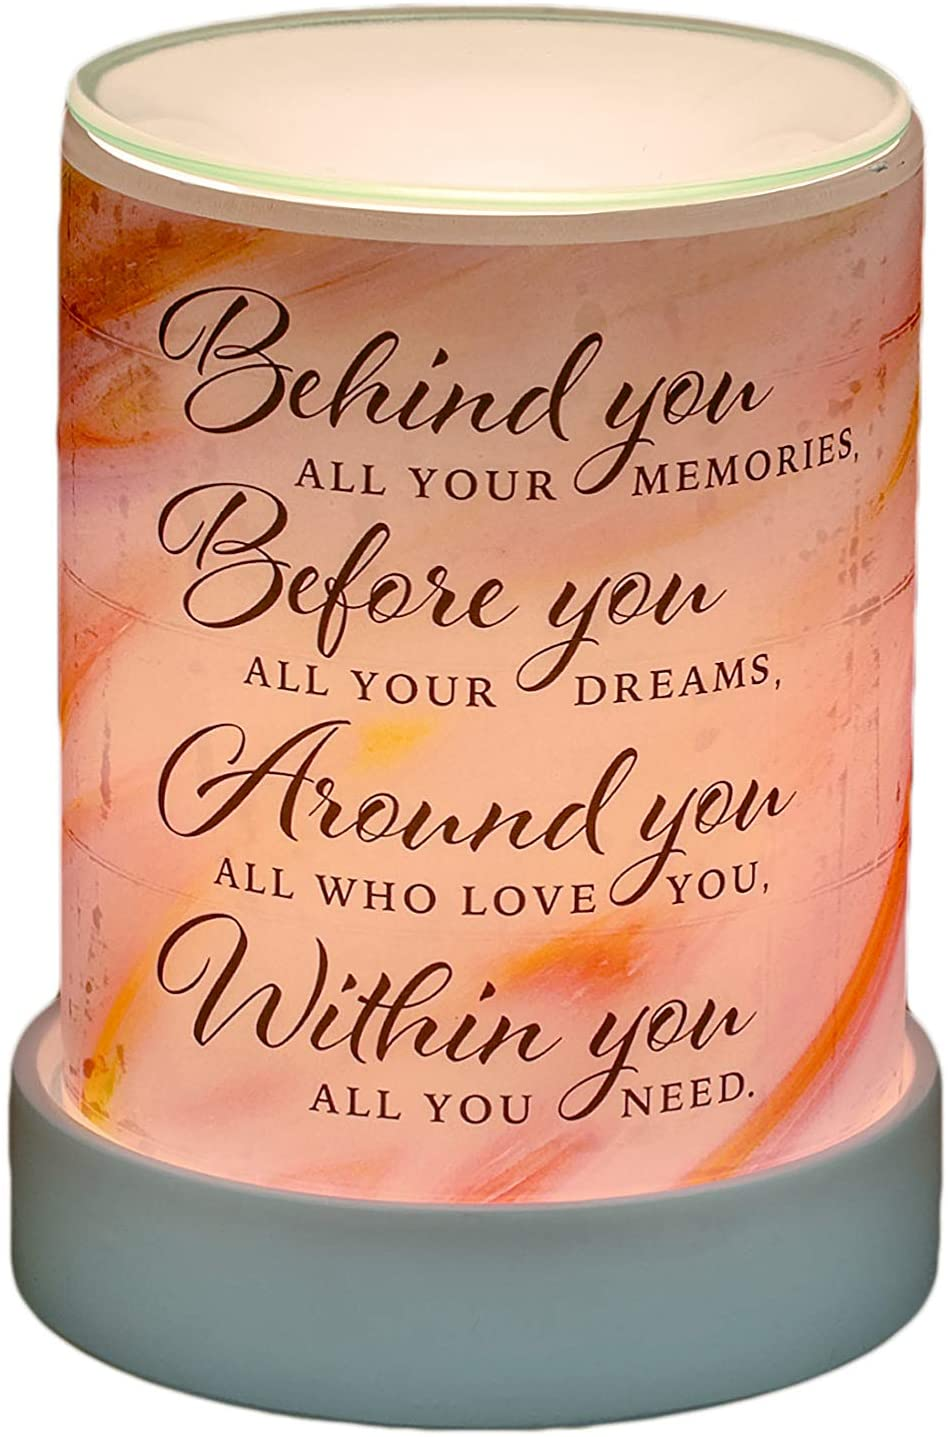 Behind You All Your Memories Frosted Glass Illuminated Scent Warmer - The Candle Shack